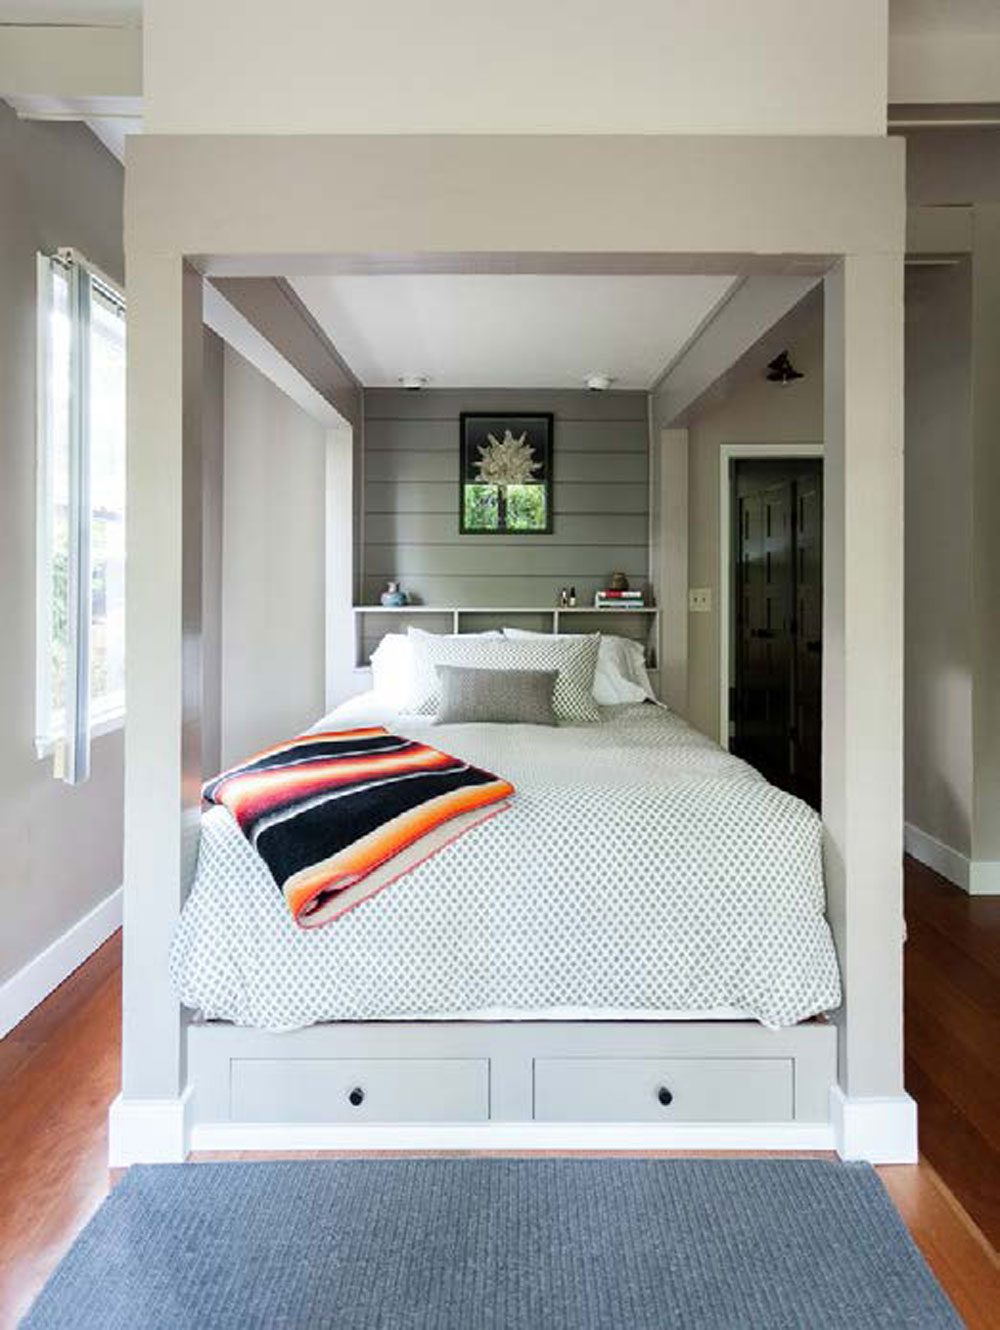 House-Interior-Design-Pictures-for-a-new-look-11 House Interior Design pictures for a new look